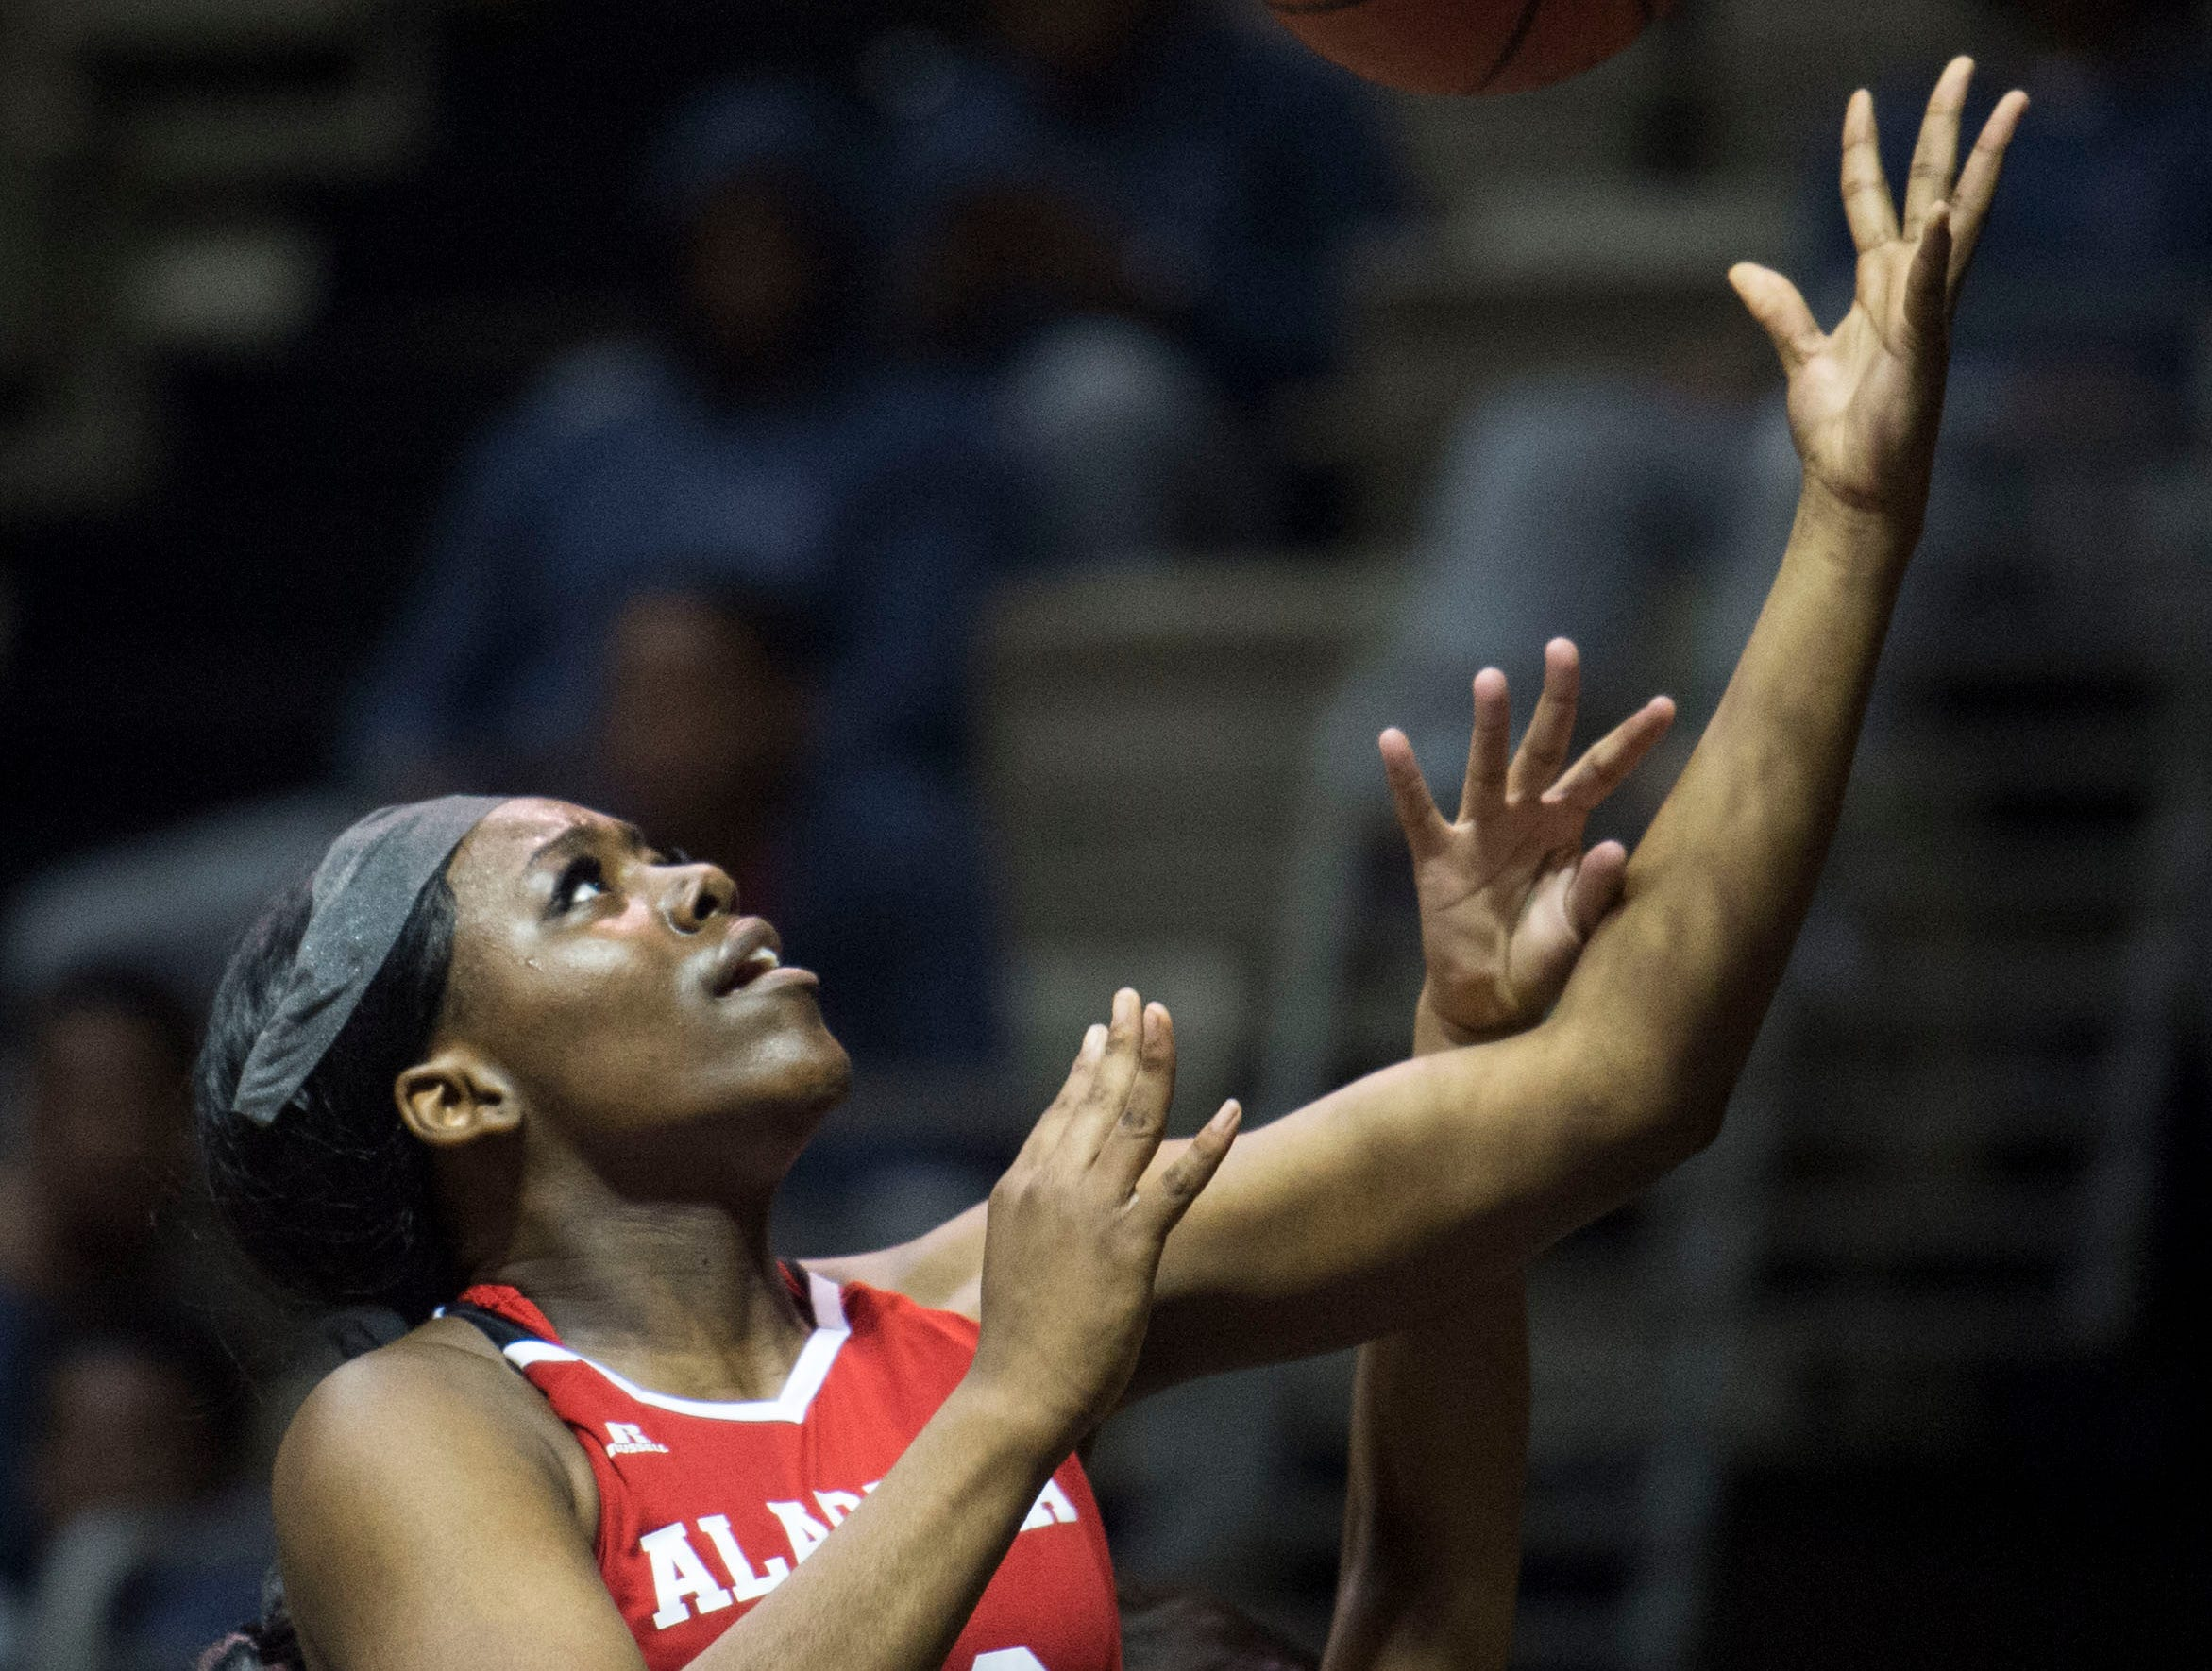 Alabama's Thaniya Marks (40) goes up for a layup during the Alabama-Mississippi All-Star game at the Dunn-Oliver Acadome in Montgomery, Ala., on Friday, March 15, 2019. Alabama All-stars lead the Mississippi All-stars 48-34 at halftime.